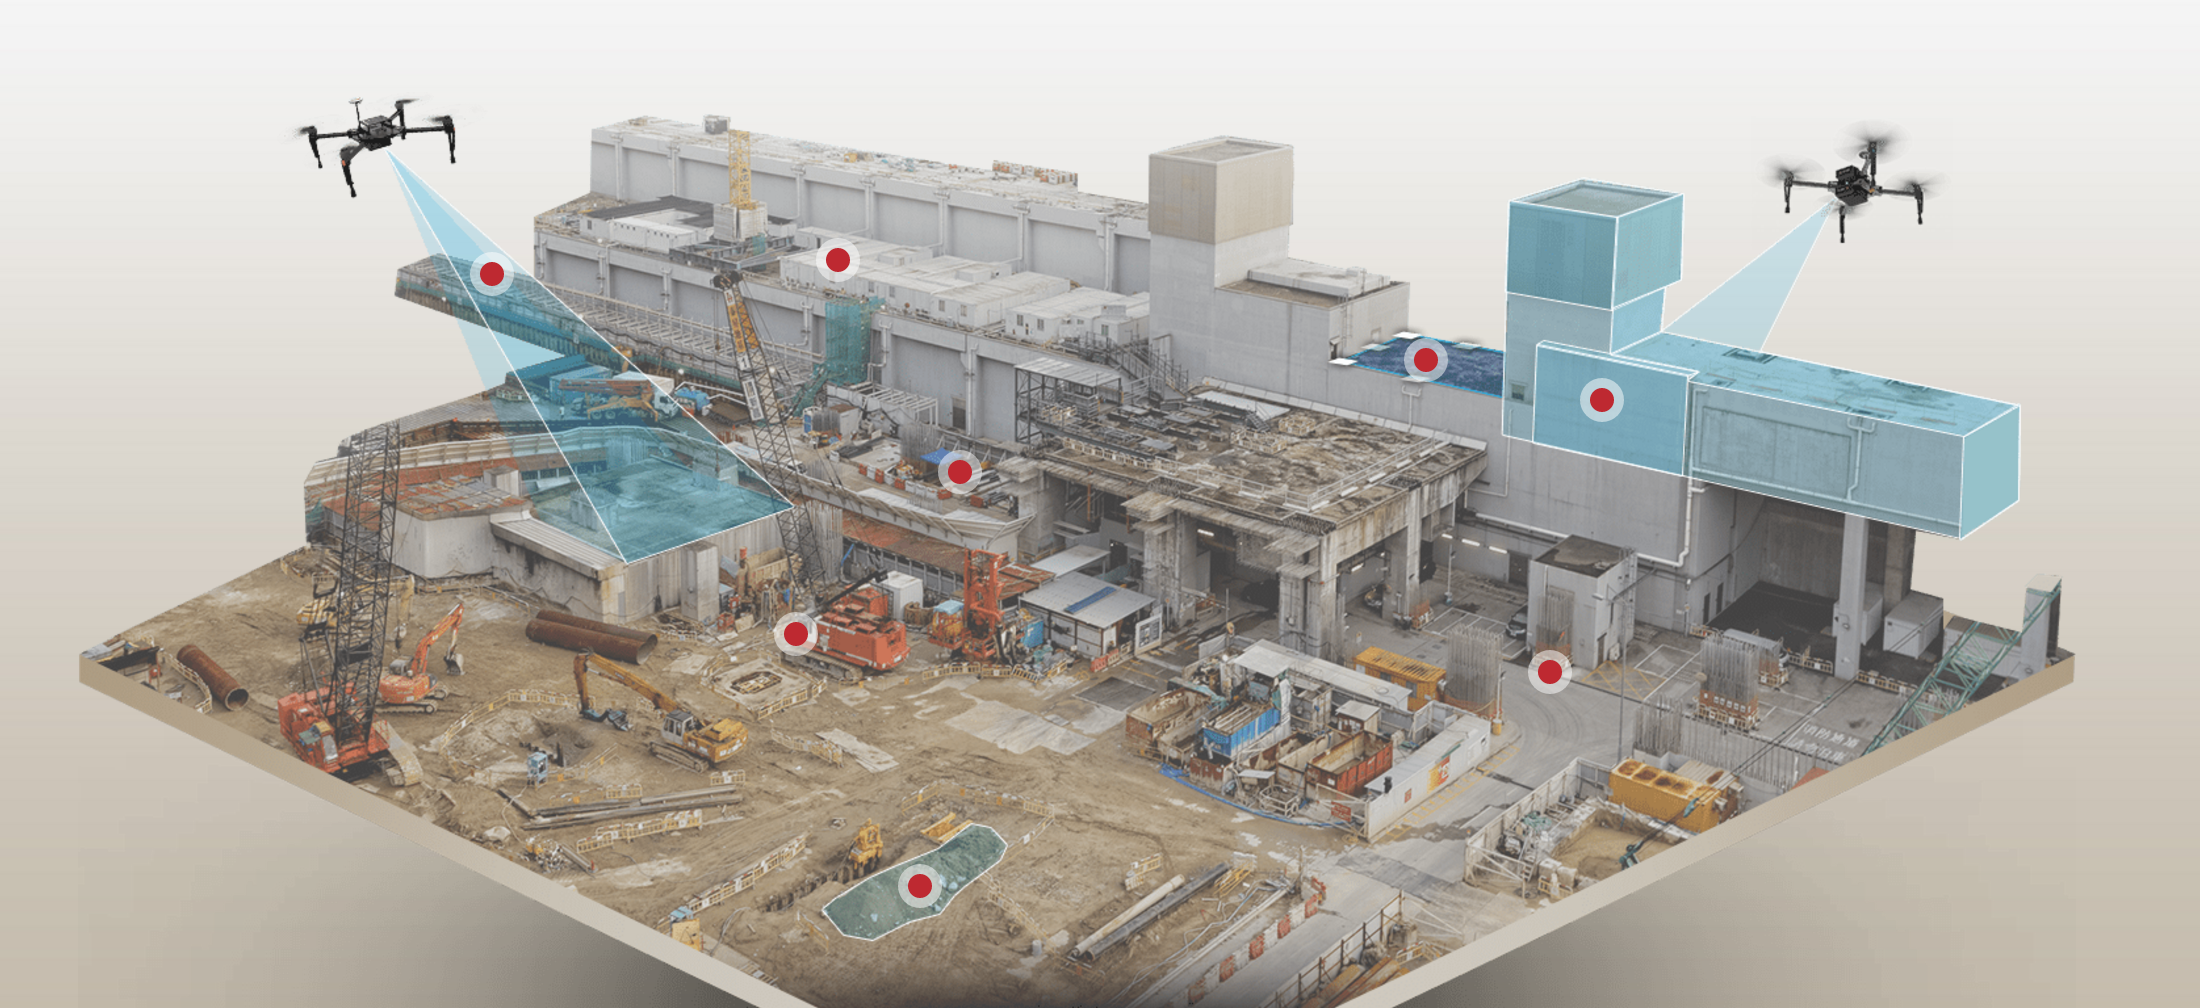 VizionAir's holistic, bird's eye view of construction sites allows firms to monitor job sites quickly, easily, and more efficiently with high resolution images and maps processed from drone data. With the ability to survey 300 acres in a single 45-minute flight, drones are now empowering construction site monitoring and asset management with seamless, on-demand business tools.